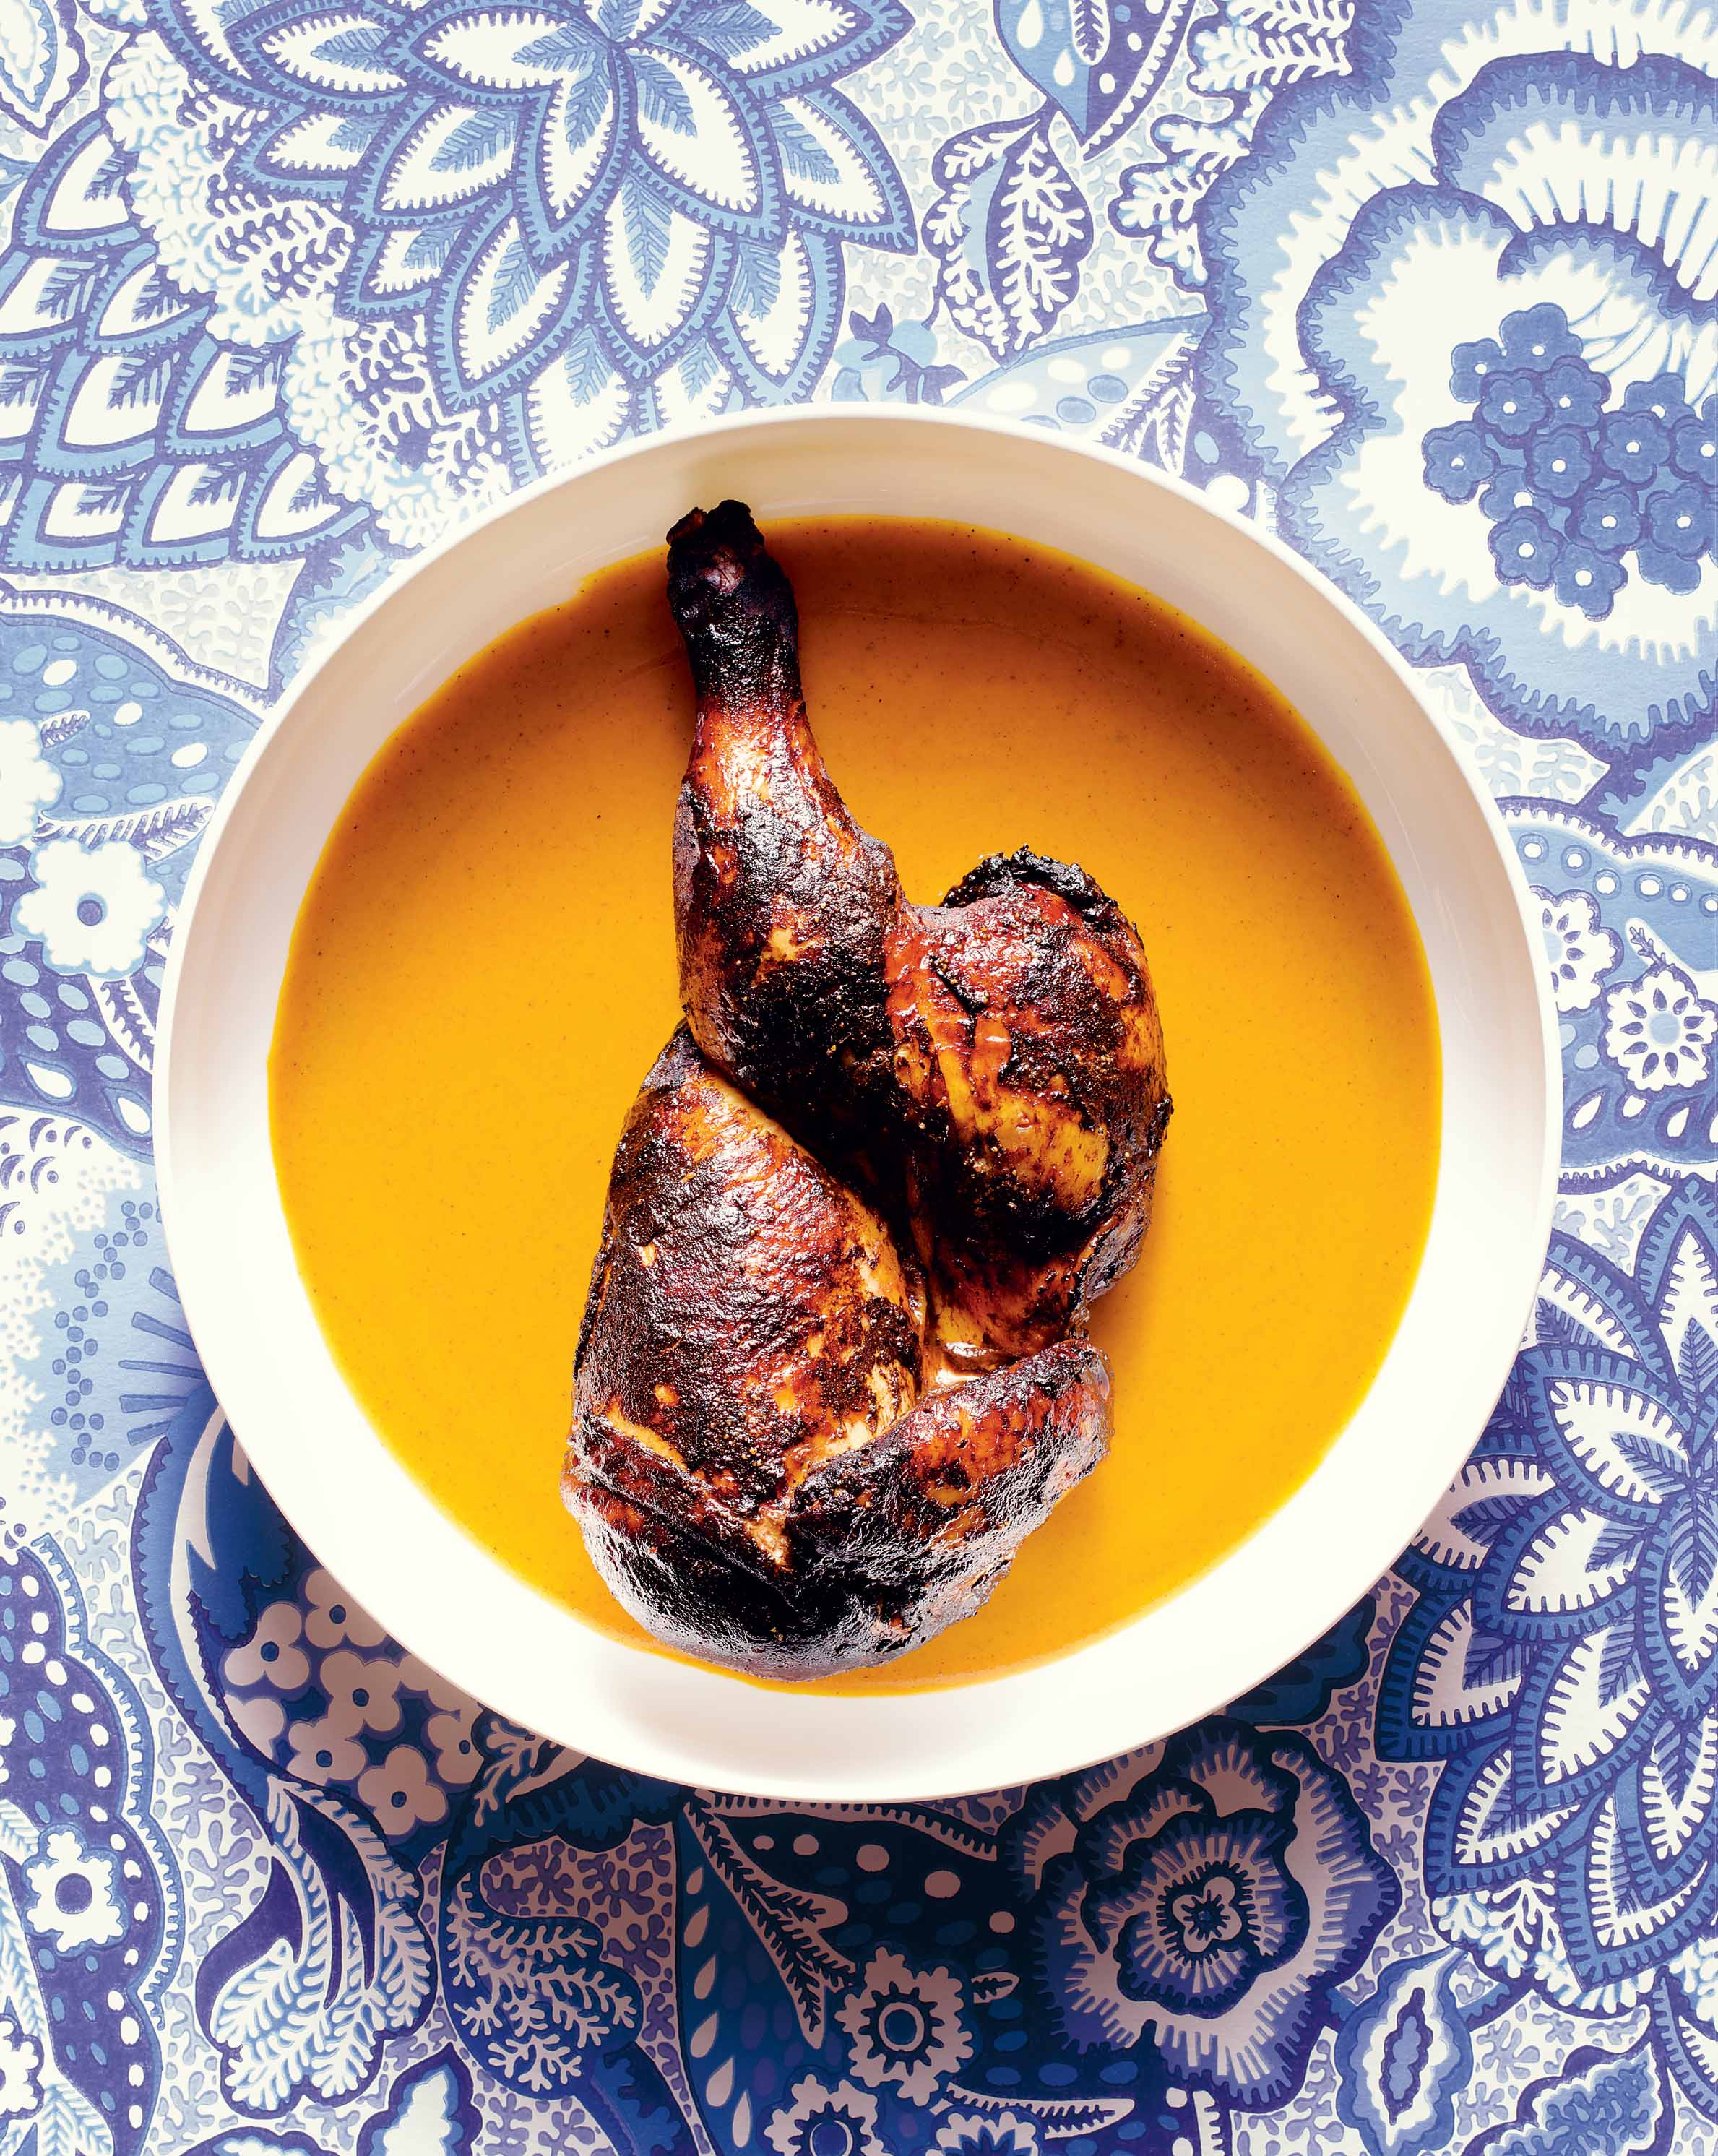 Barbecued chicken with yellow mustard sauce